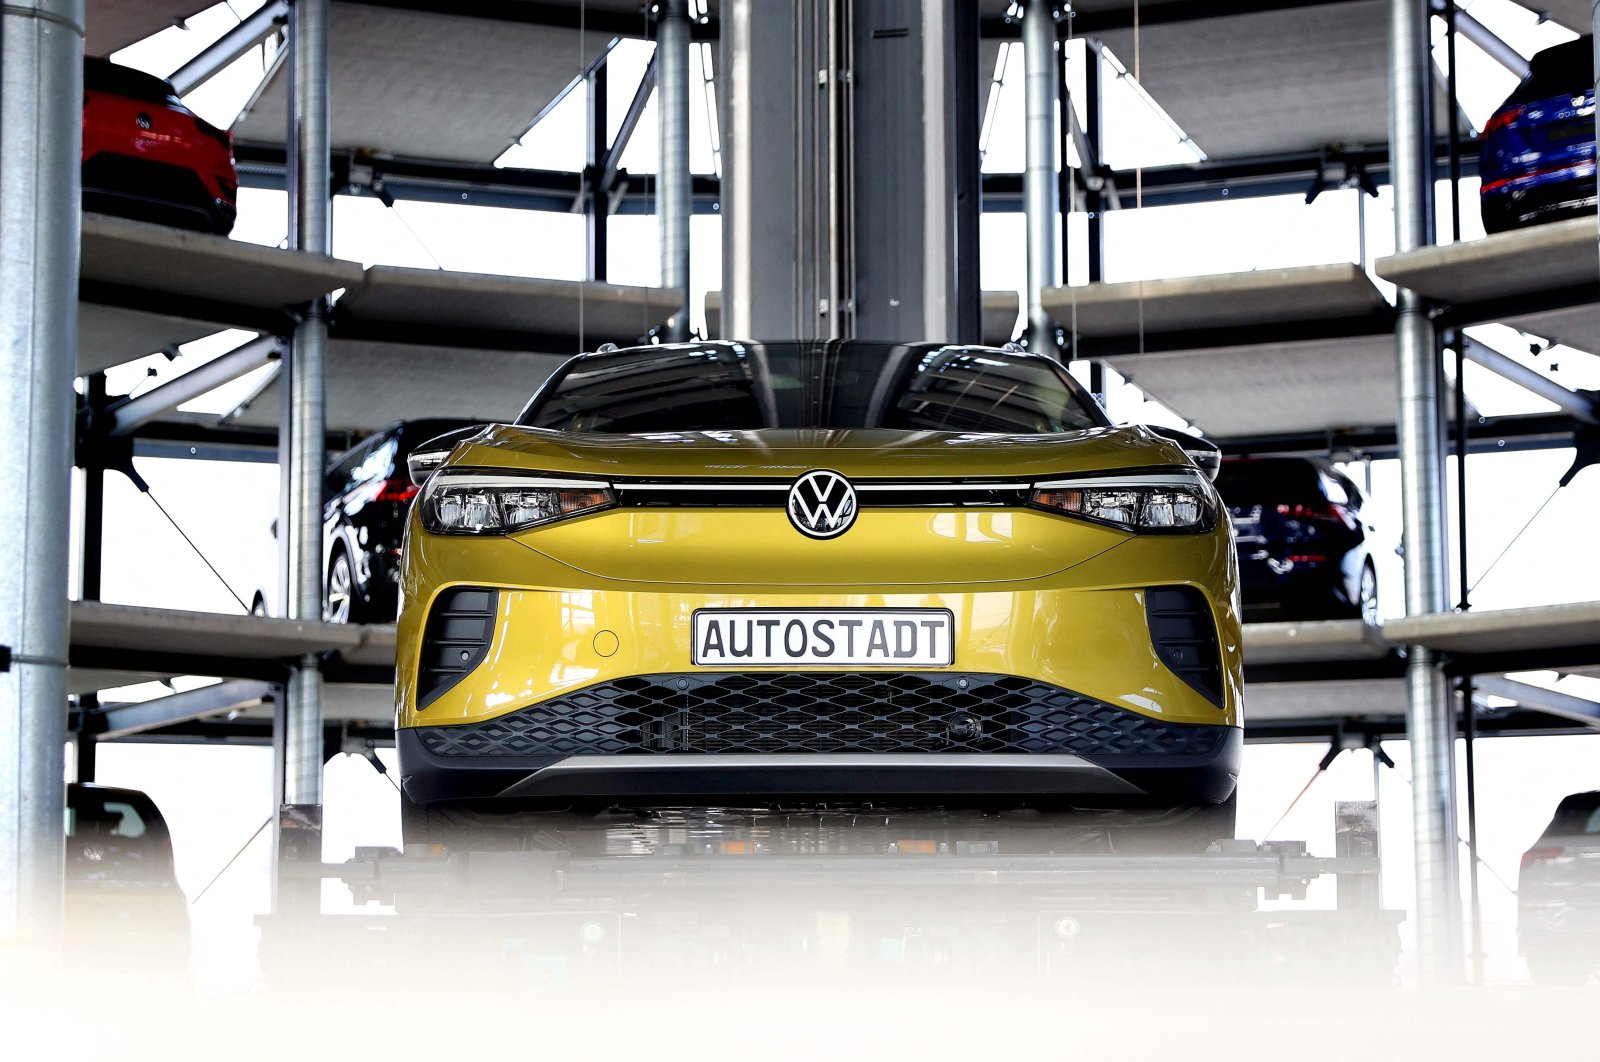 A new Volkswagen ID.4 SUV electric automobile is on display at the storage facility auto tower of German carmaker Volkswagen in Wolfsburg, northern Germany, March 26, 2021. (AFP Photo)